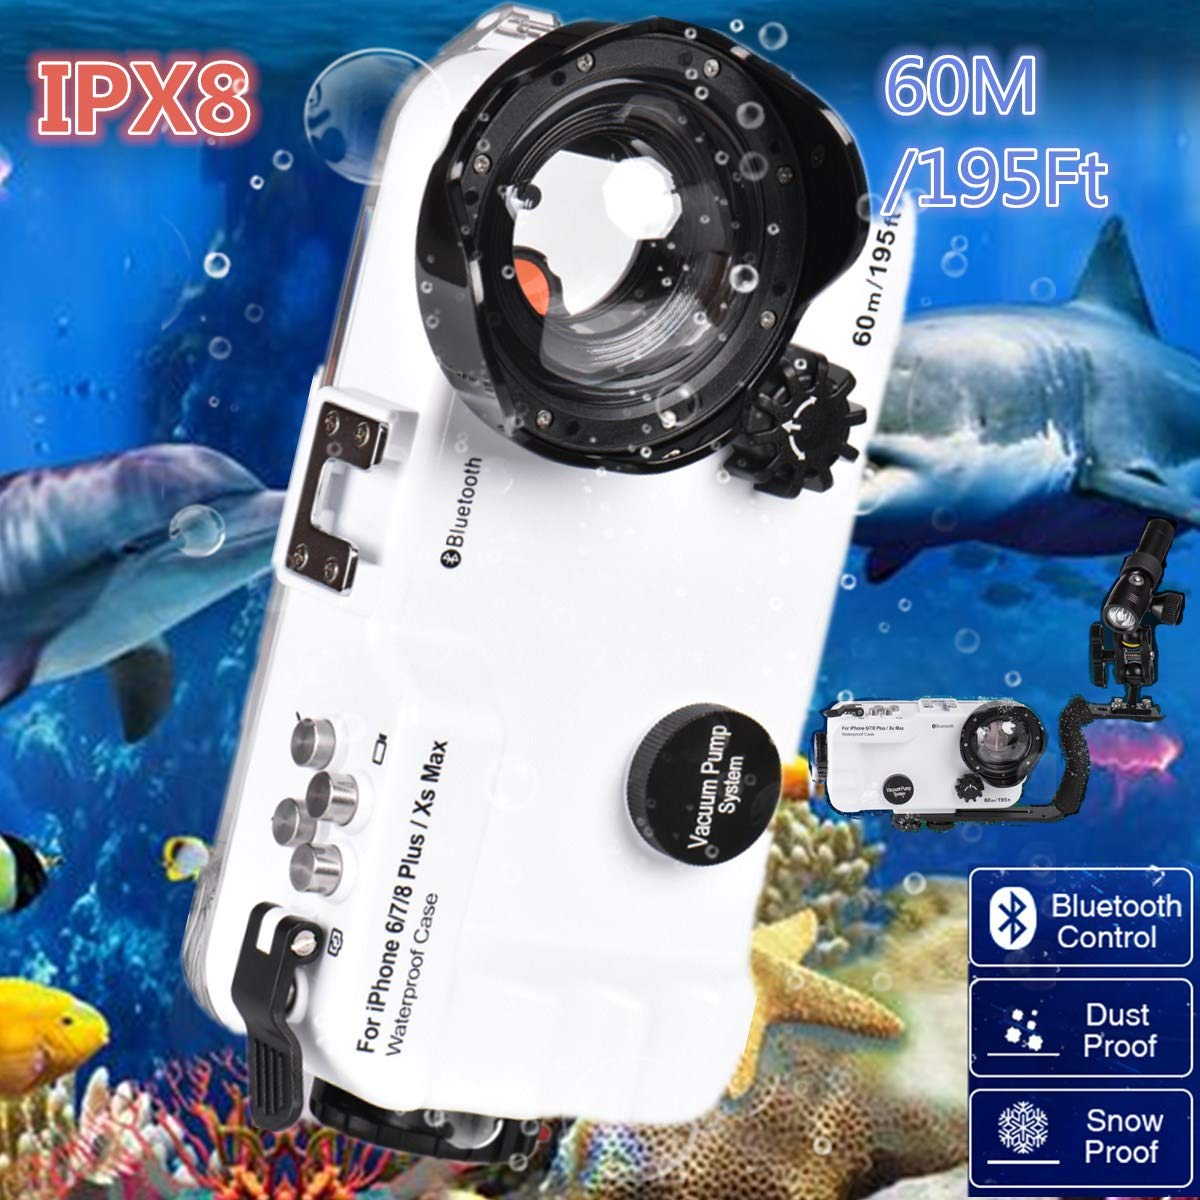 BECROWMUS Bluetooth Control iPhone 6P/7P/8P/XS Max 195FT/60M IPX8 Waterproof case Professional Diving Underwater Swimming Surfing Snorkeling House Photo Video with Wide Angle Dome Port Lens by BECROWMUS